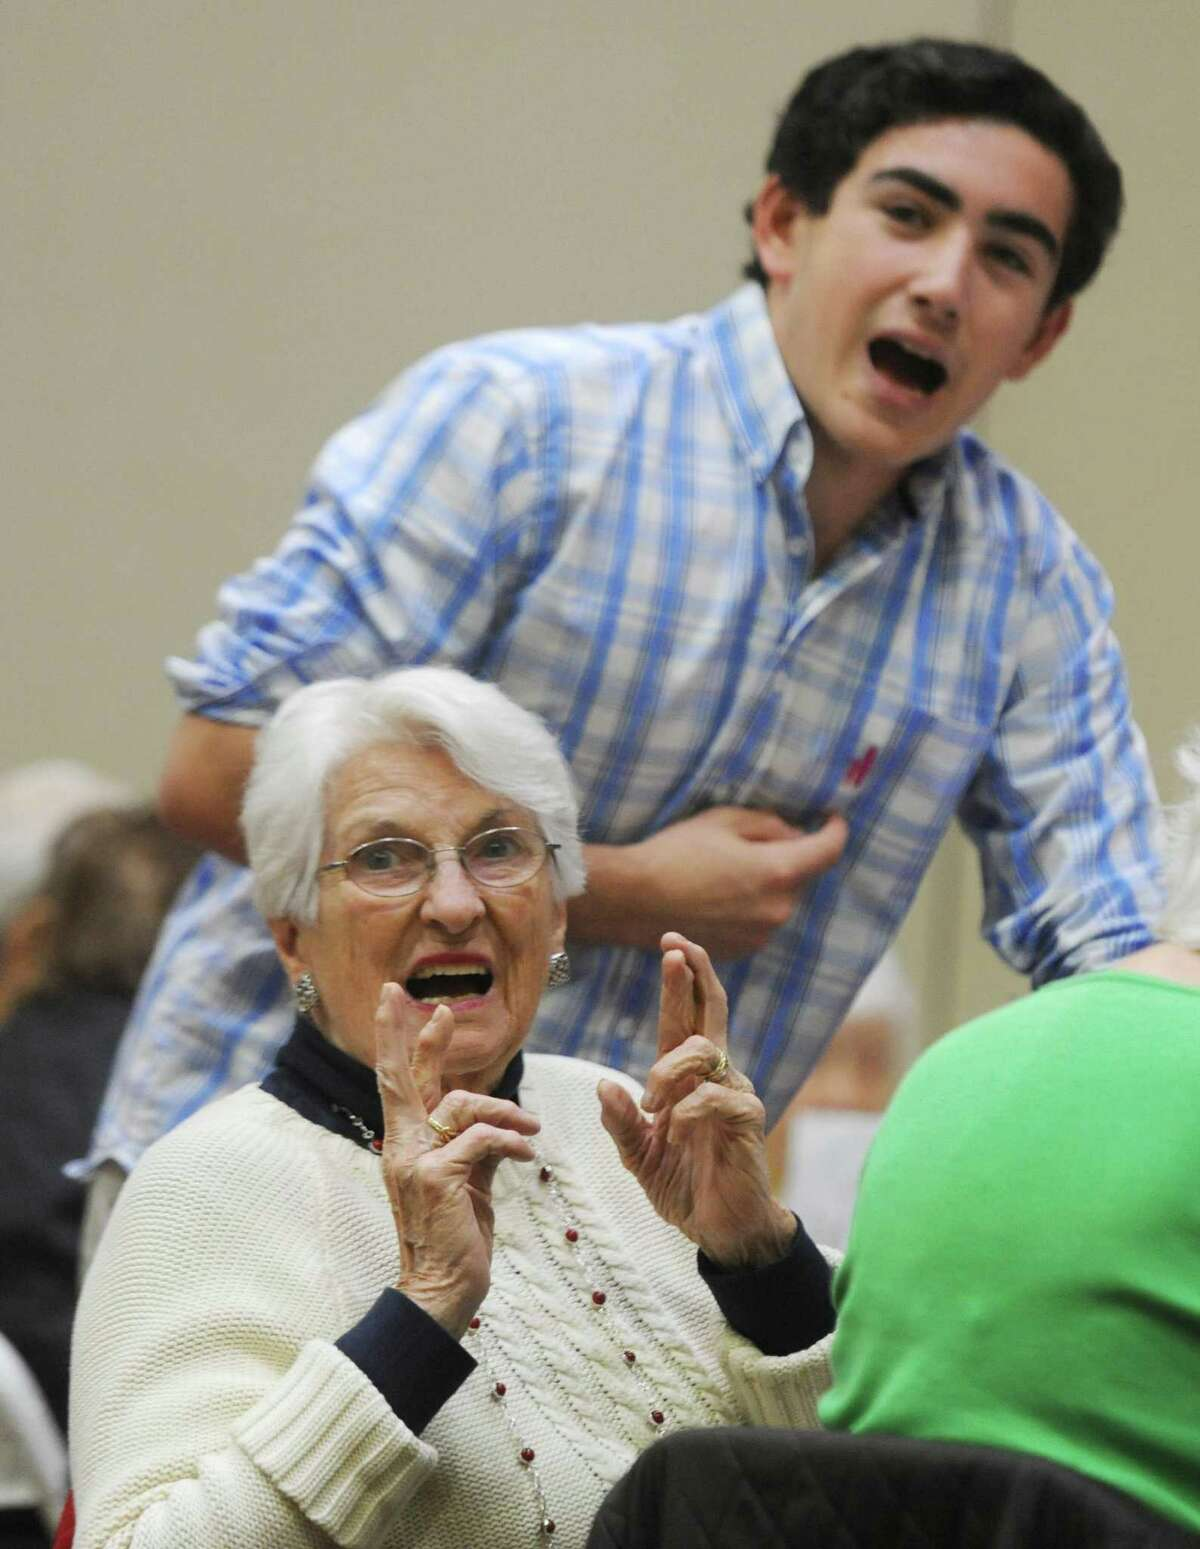 Bernice Carroll, of Riverside, crosses her fingers that all of her numbers are correct after calling Bingo during Senior Bingo Day at Temple Sholom in Greenwich, Conn. Sunday, Nov. 13, 2016. More than 100 seniors gathered to play Bingo, with each round being a different variation of the game such as straight line and postage stamp. The group was treated to a short performance by the Temple Sholom Youth and Junior Choir.